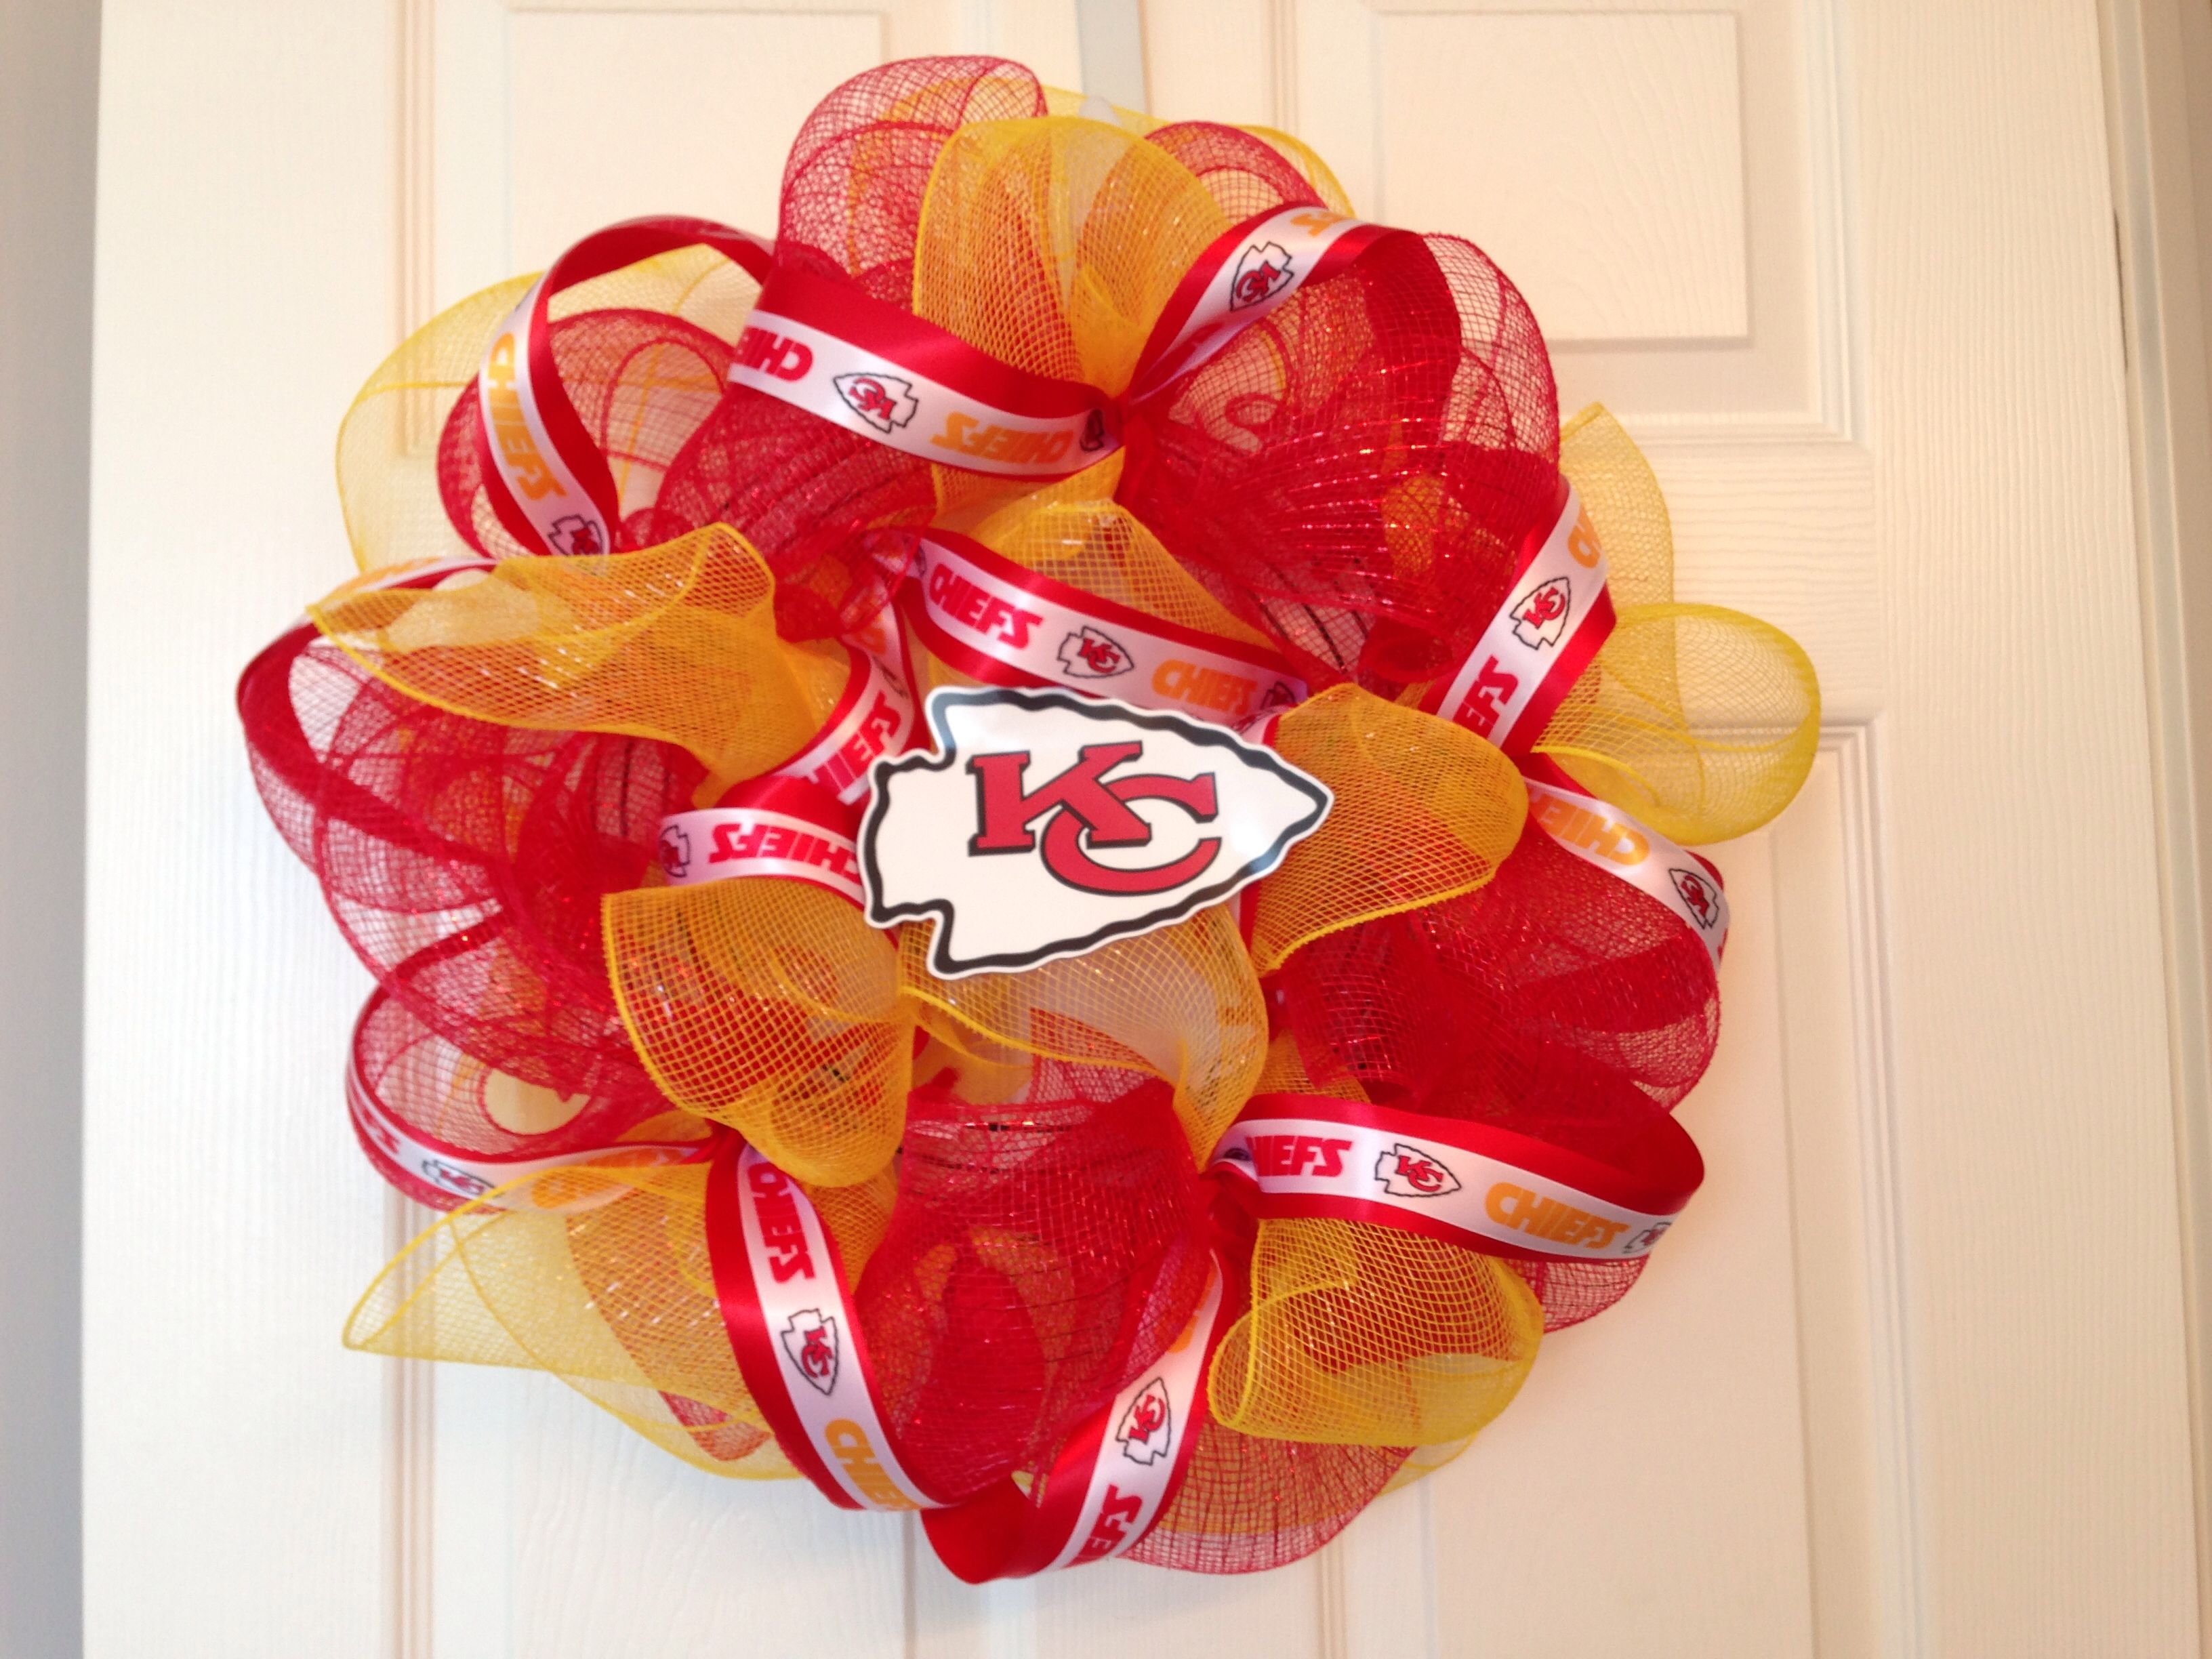 25 best Kansas City Chiefs Gift Ideas images on Pinterest